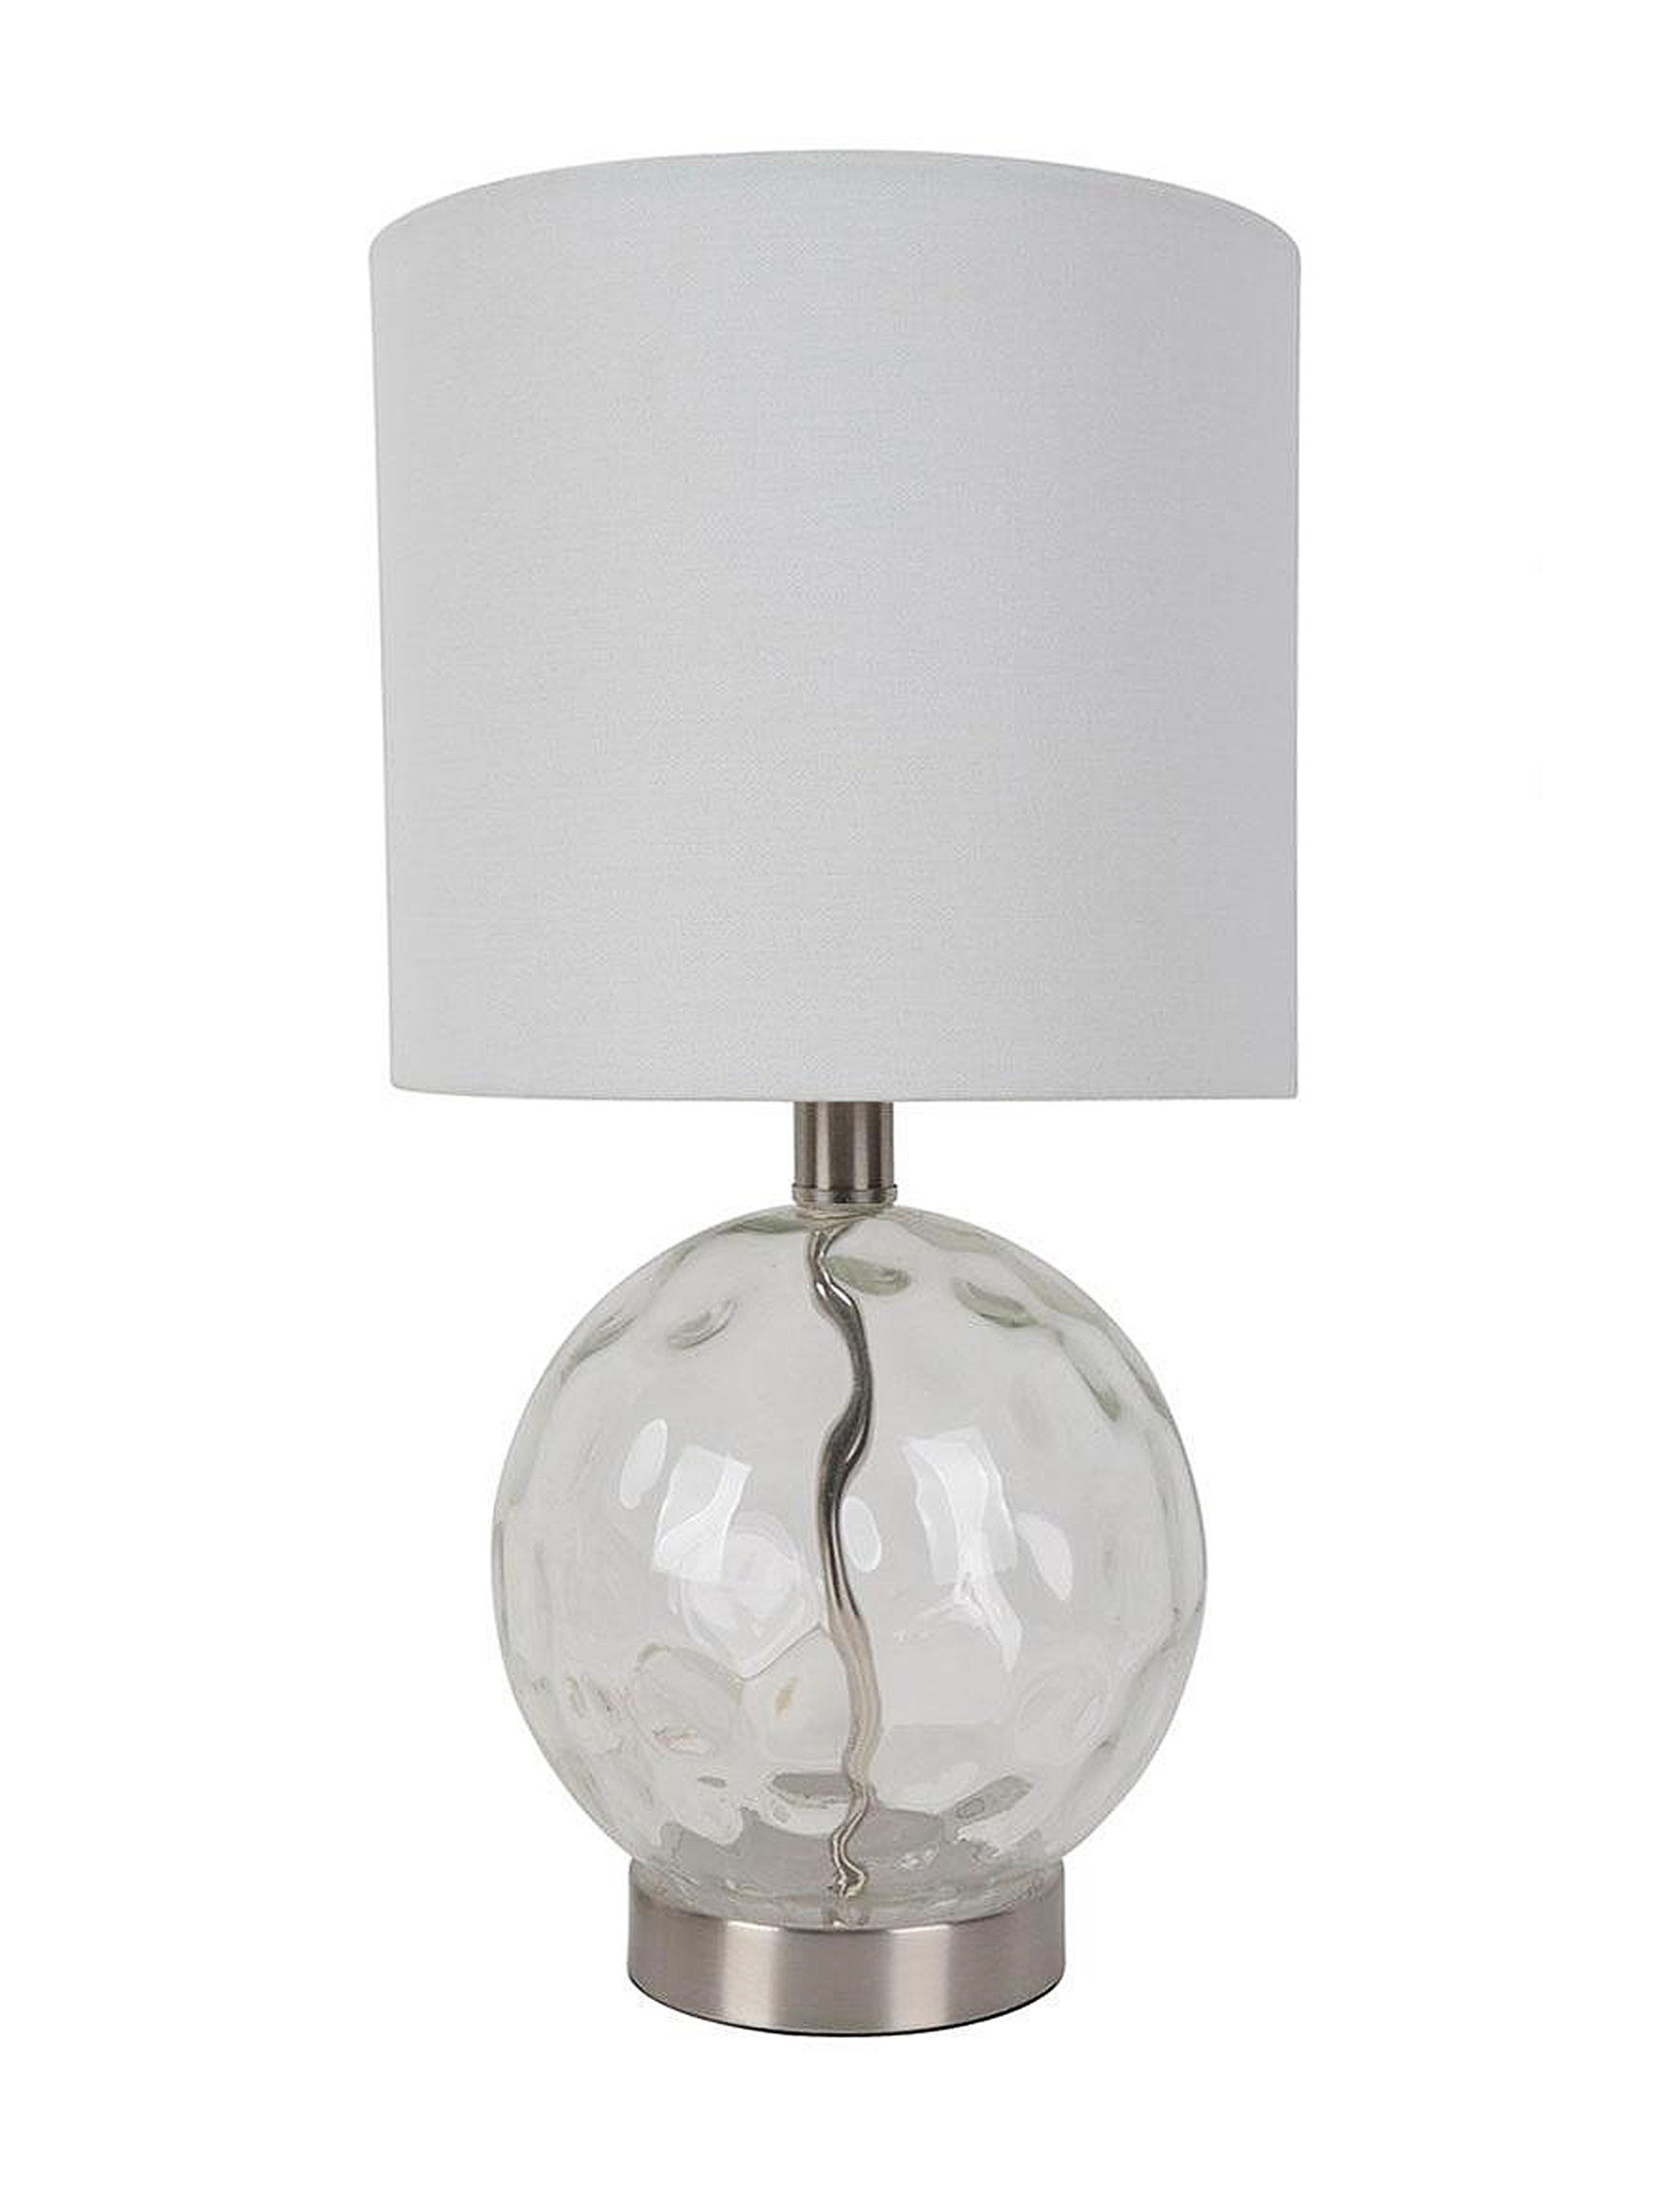 Jimco Lamp & Manufacturing Glass Table Lamps Lighting & Lamps